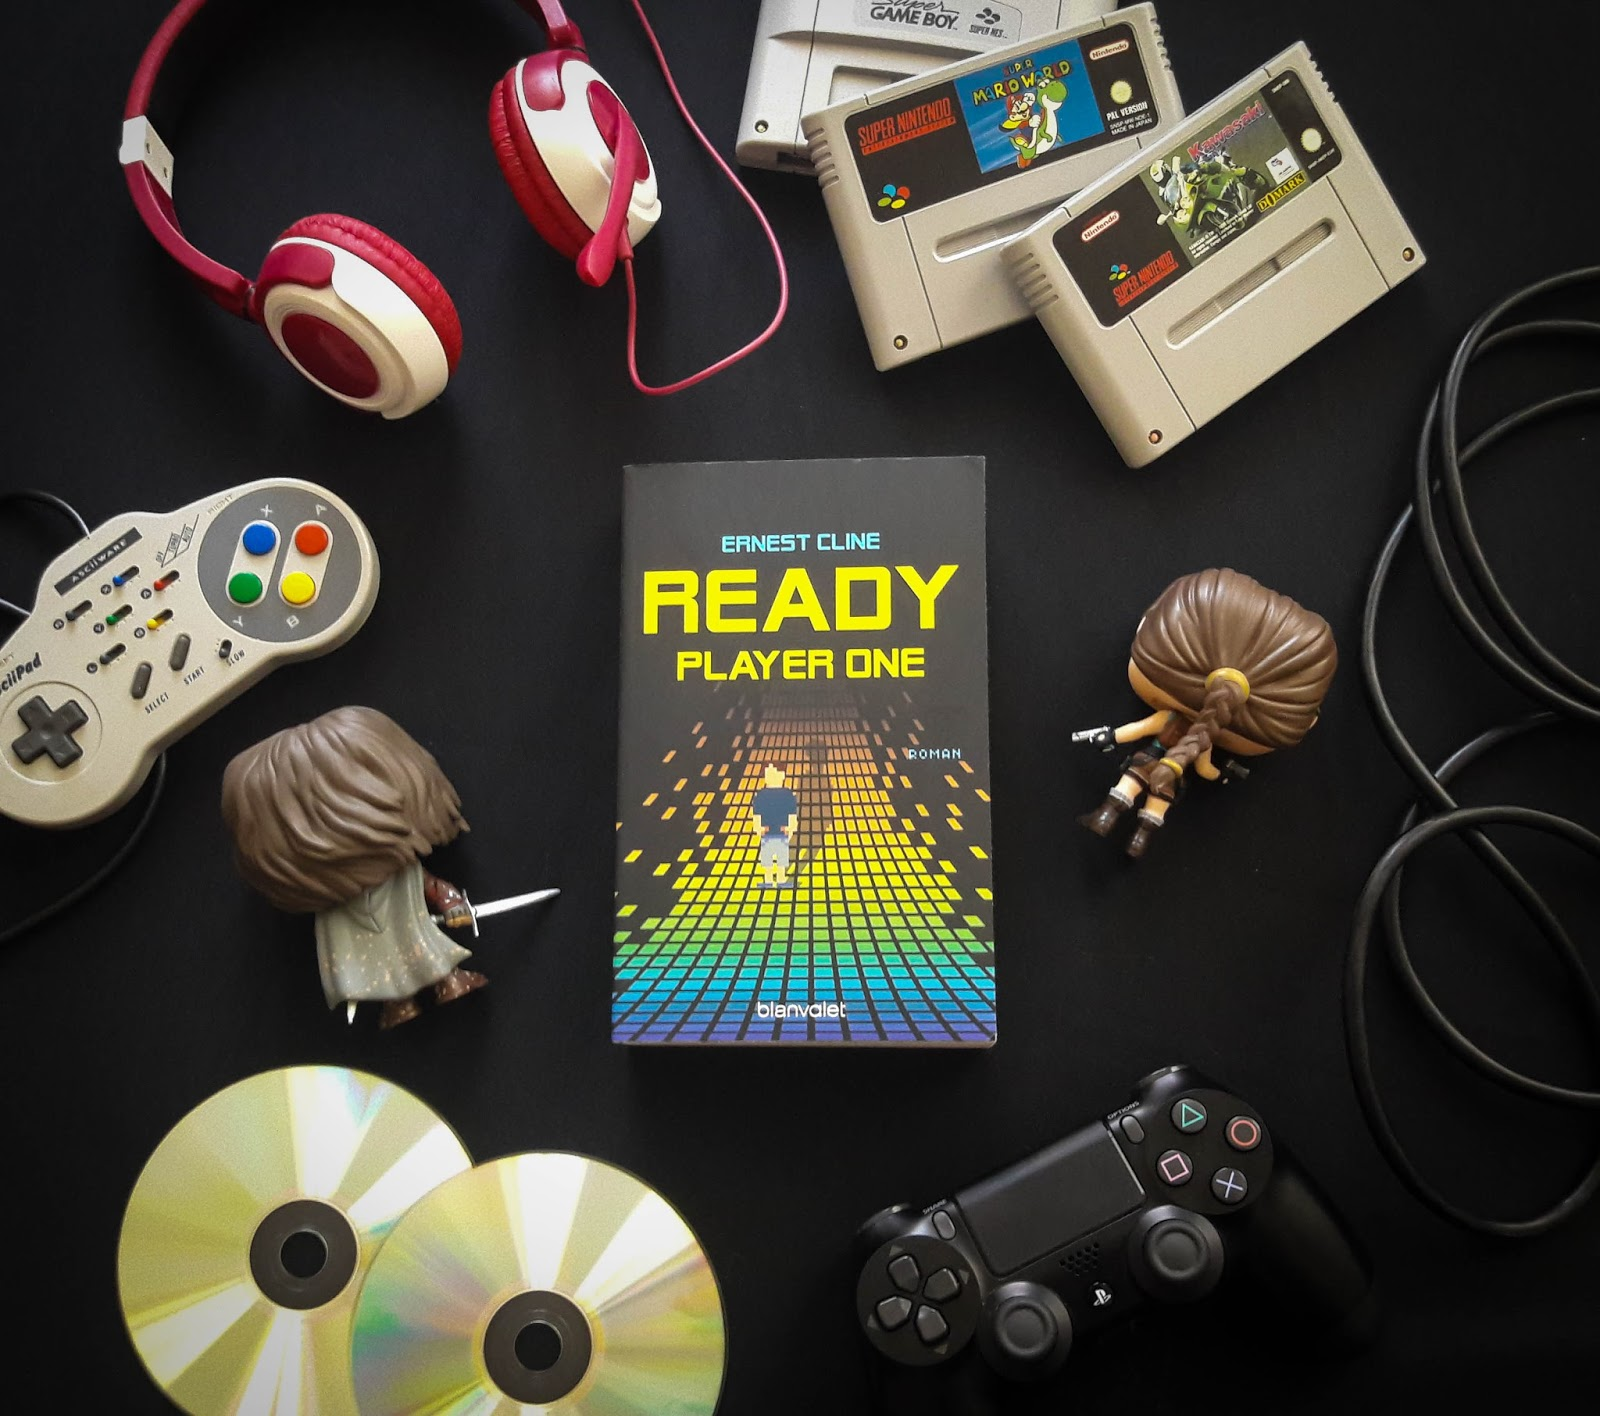 READY PLAYER ONE – Ernest Cline graphic